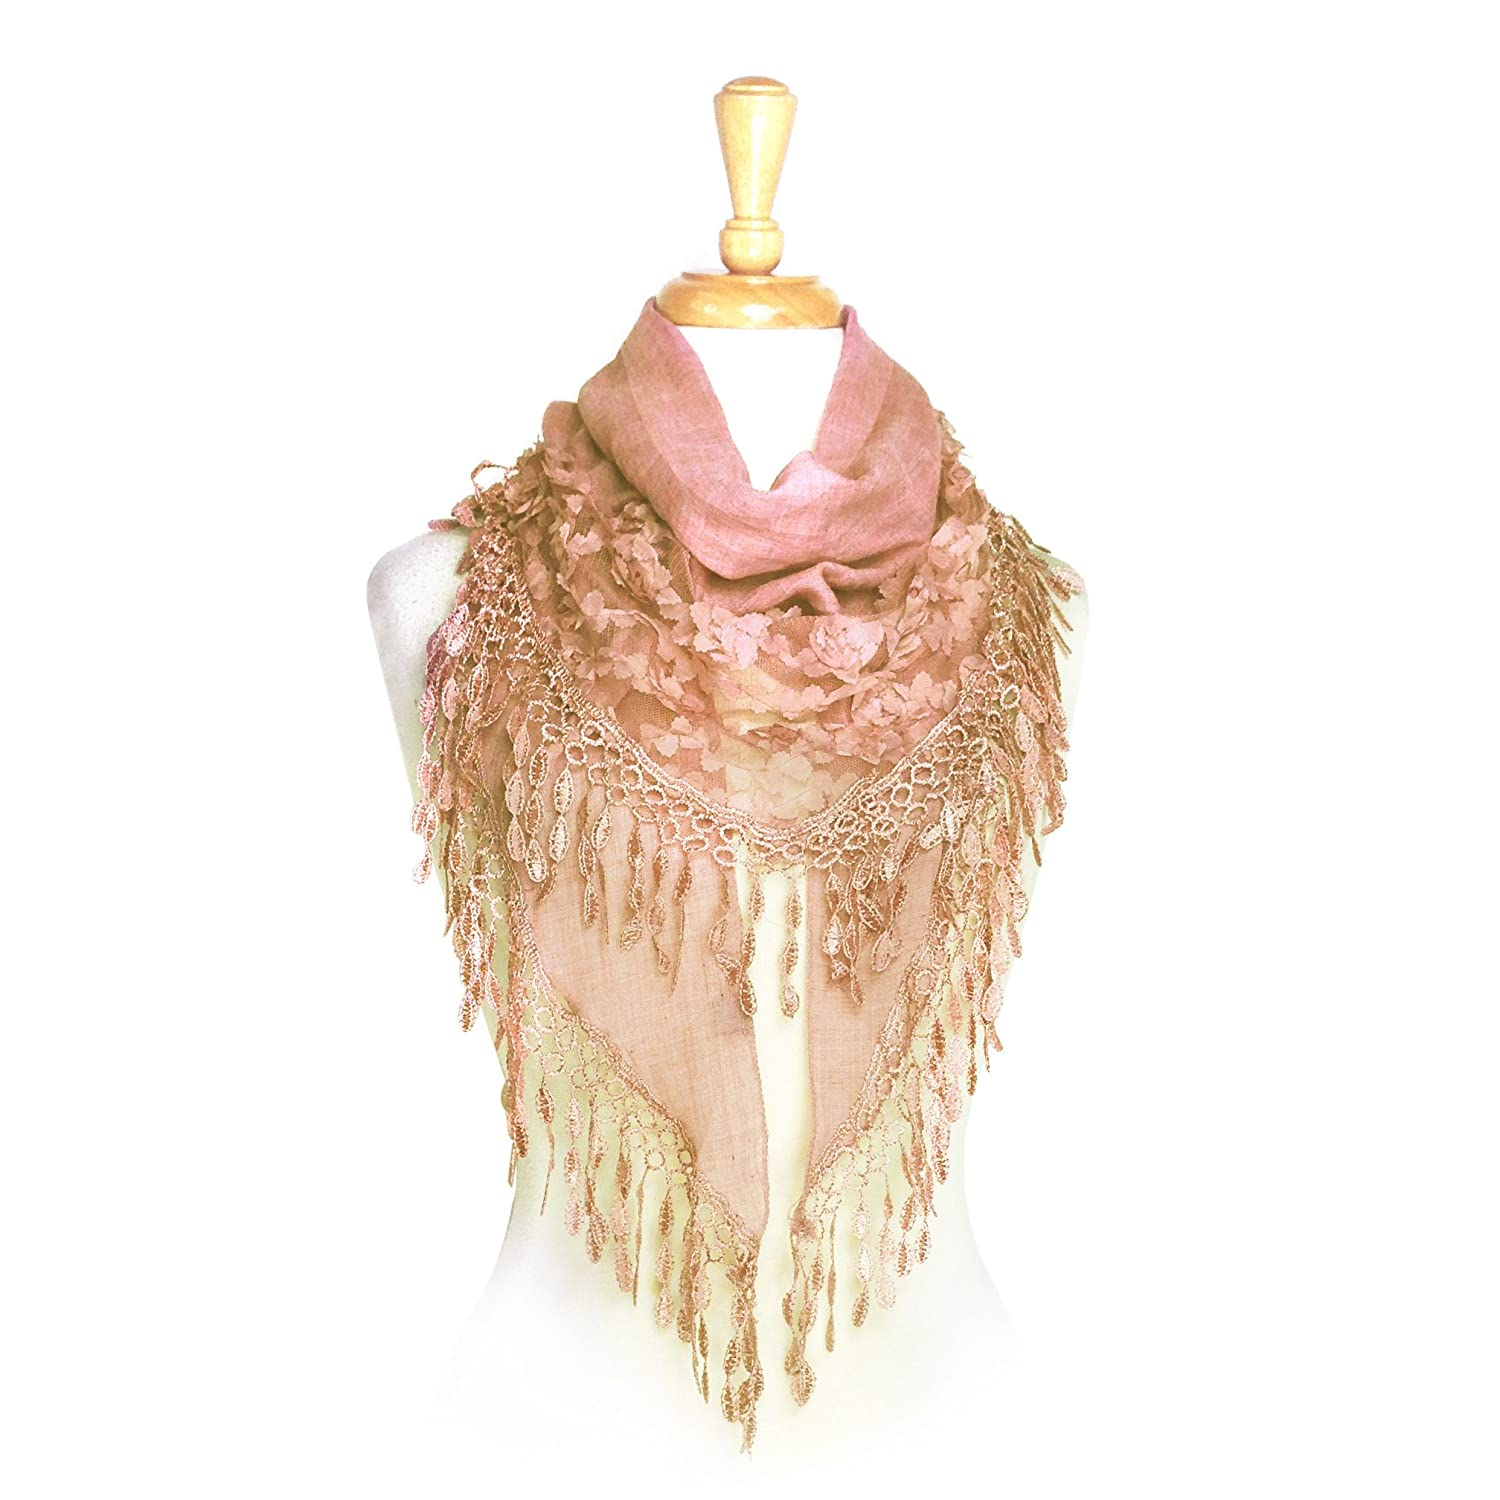 e0924d1f24f Paskmlna® Women s Lightweight Fancy Triangle Lace Scarf with Floral